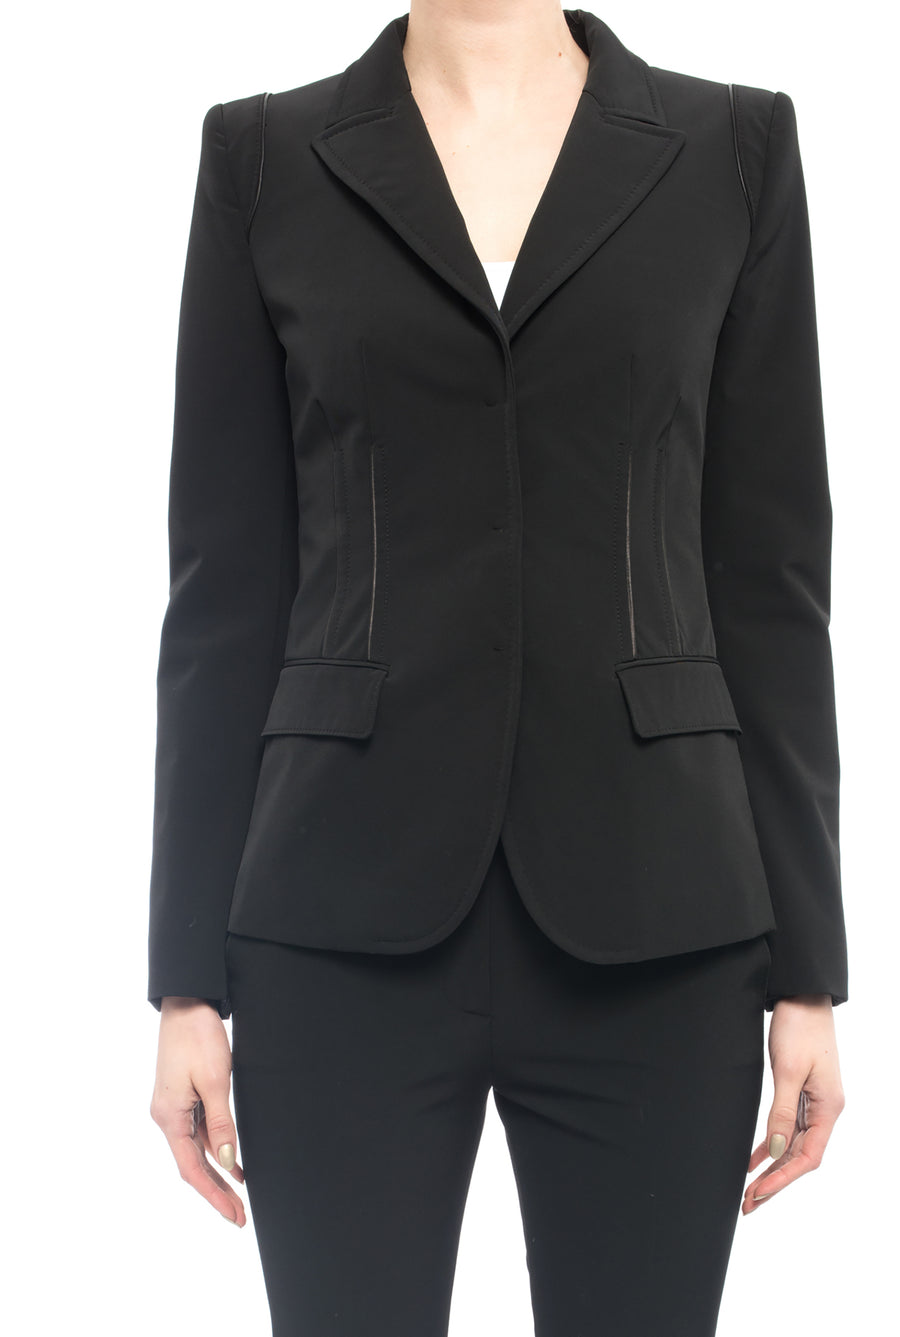 Prada Microfibre Nylon Fitted Black Jacket with Leather Piping - 2